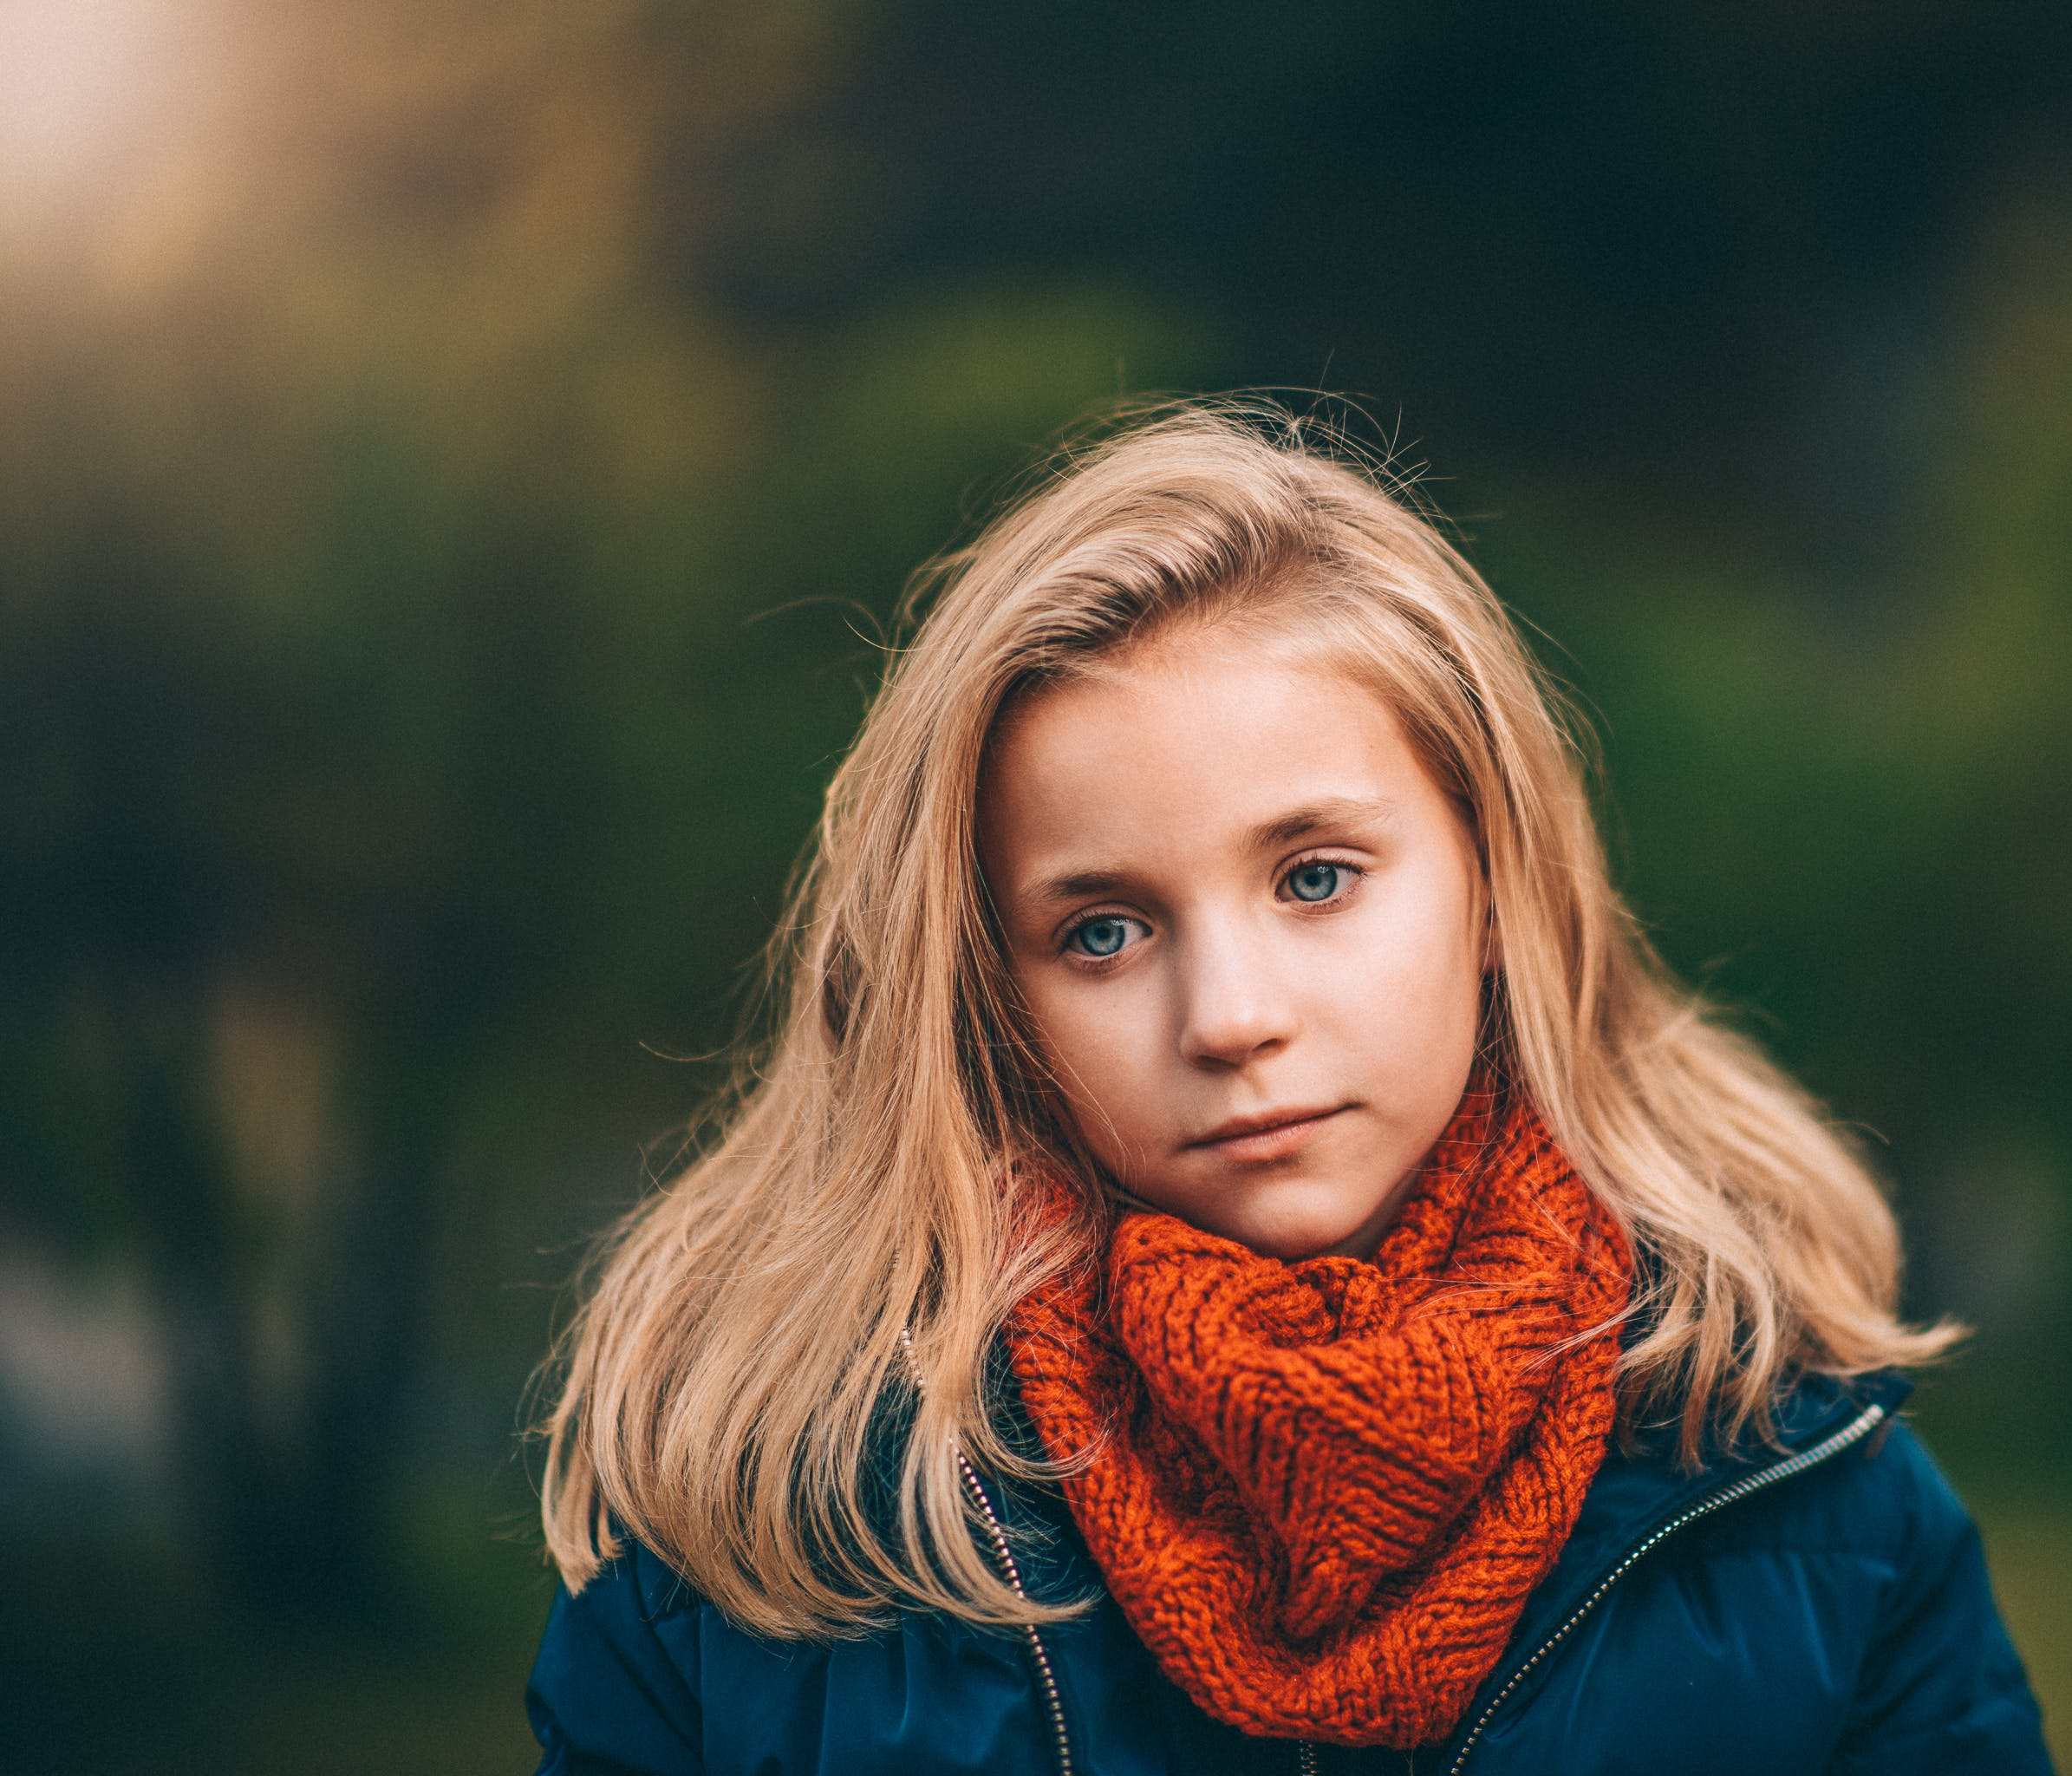 Girl Wearing Orange Scarf Selective Focus Photography